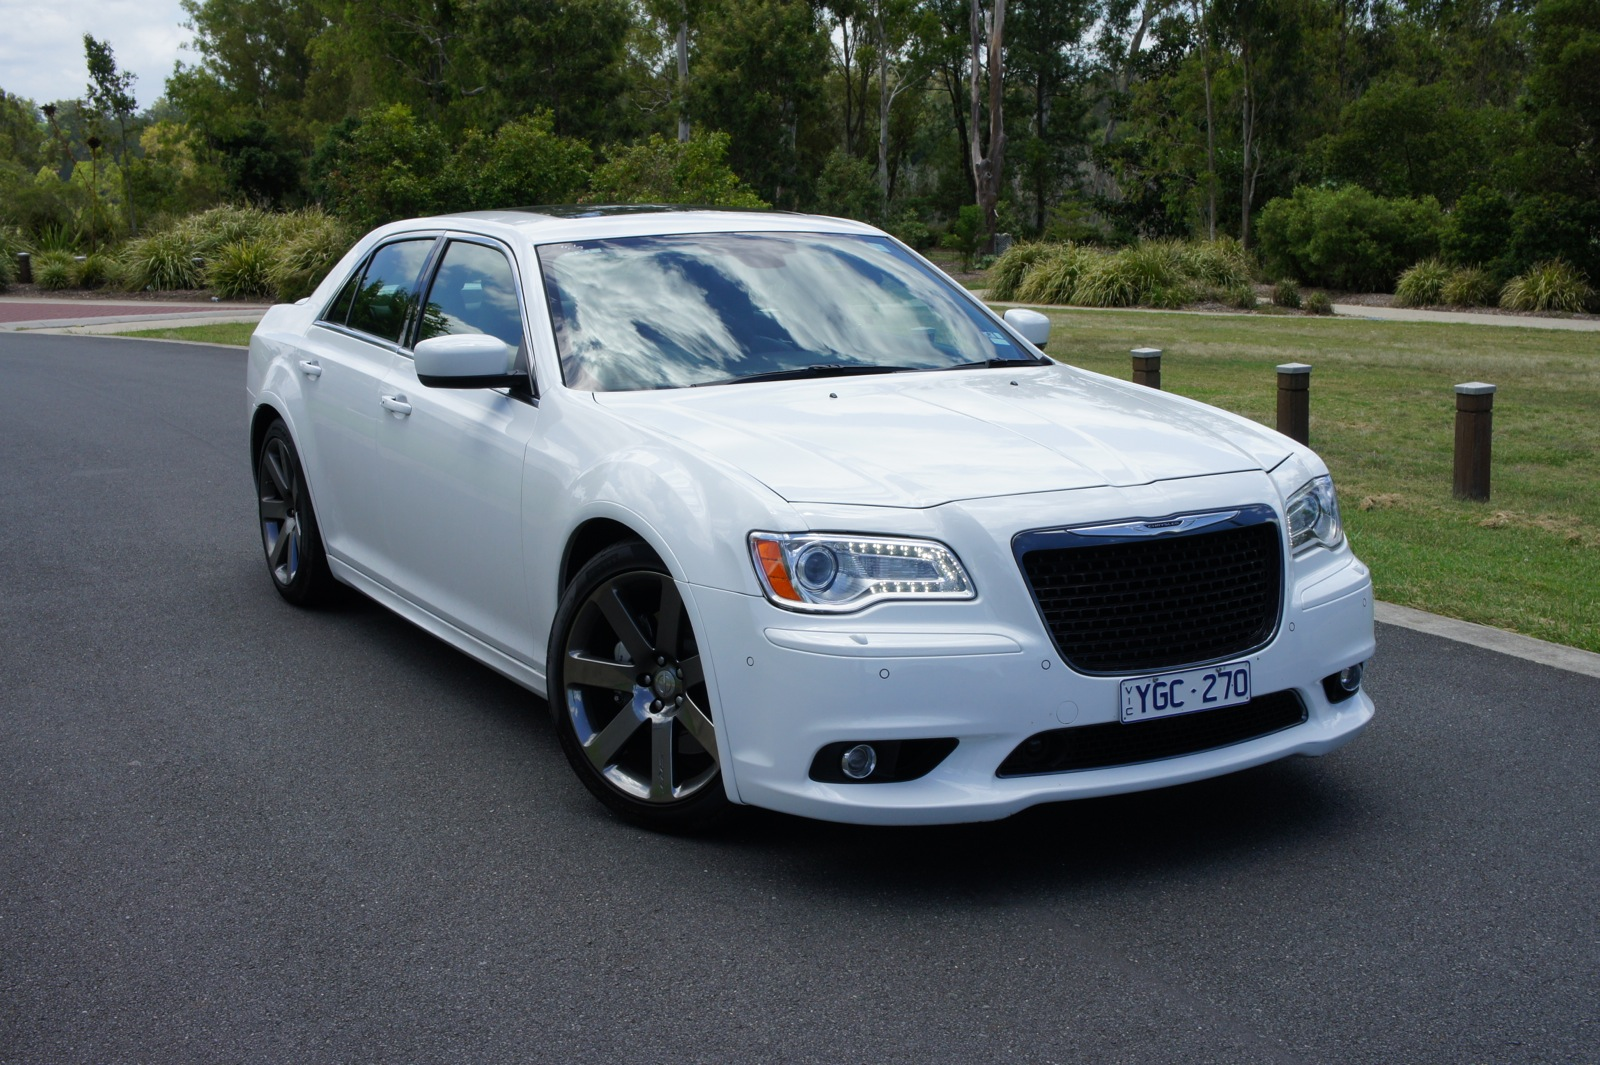 Chrysler 300 Srt8 Review Photos Caradvice